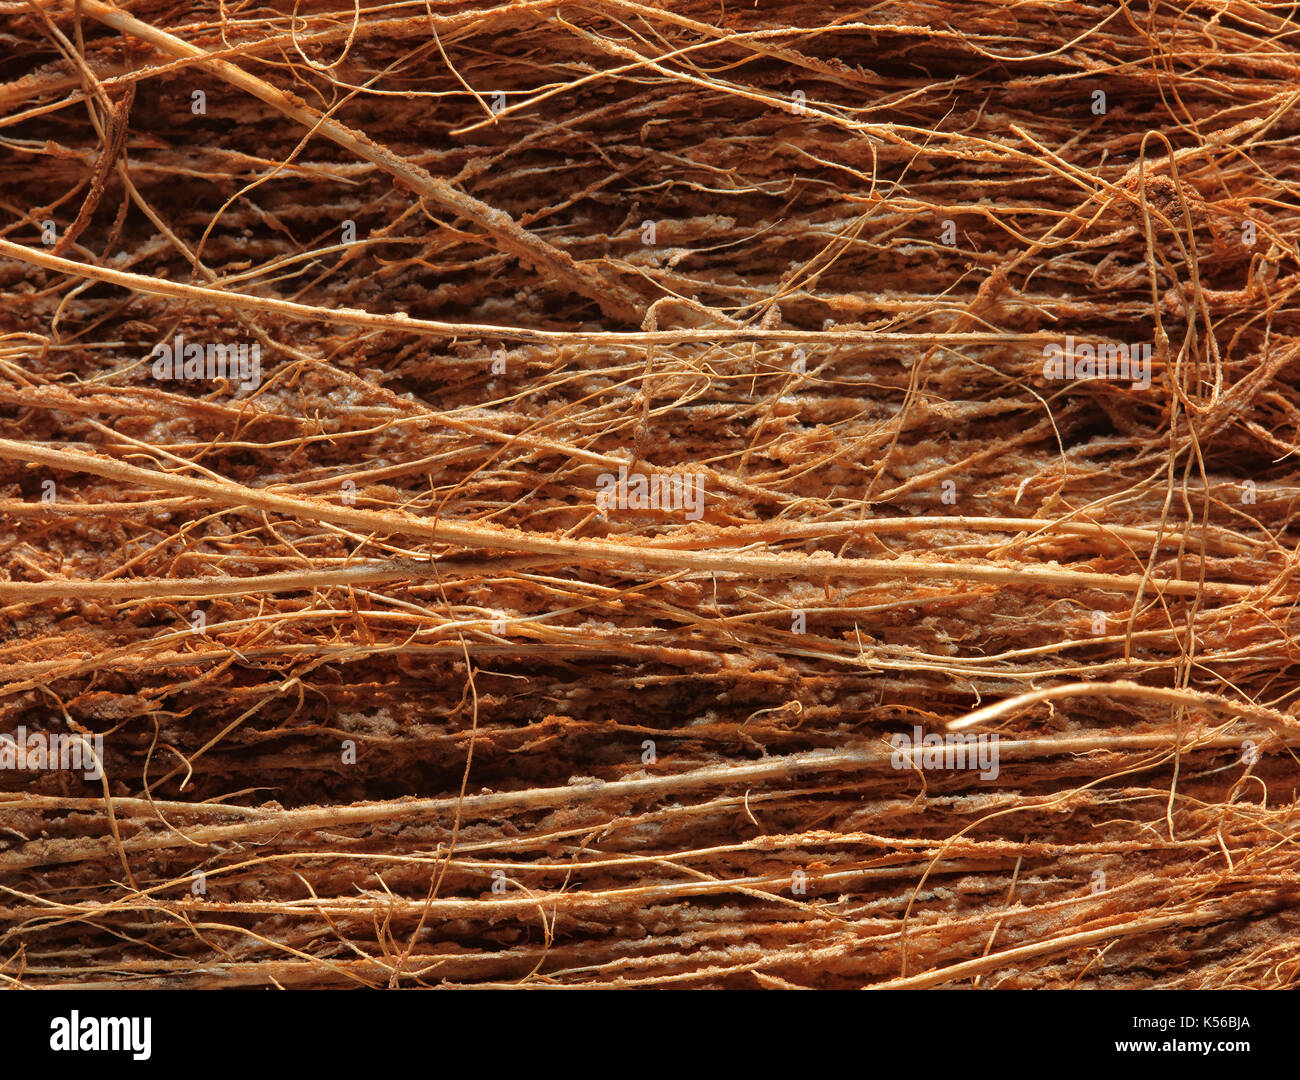 coir fiber stock photos coir fiber stock images alamy. Black Bedroom Furniture Sets. Home Design Ideas